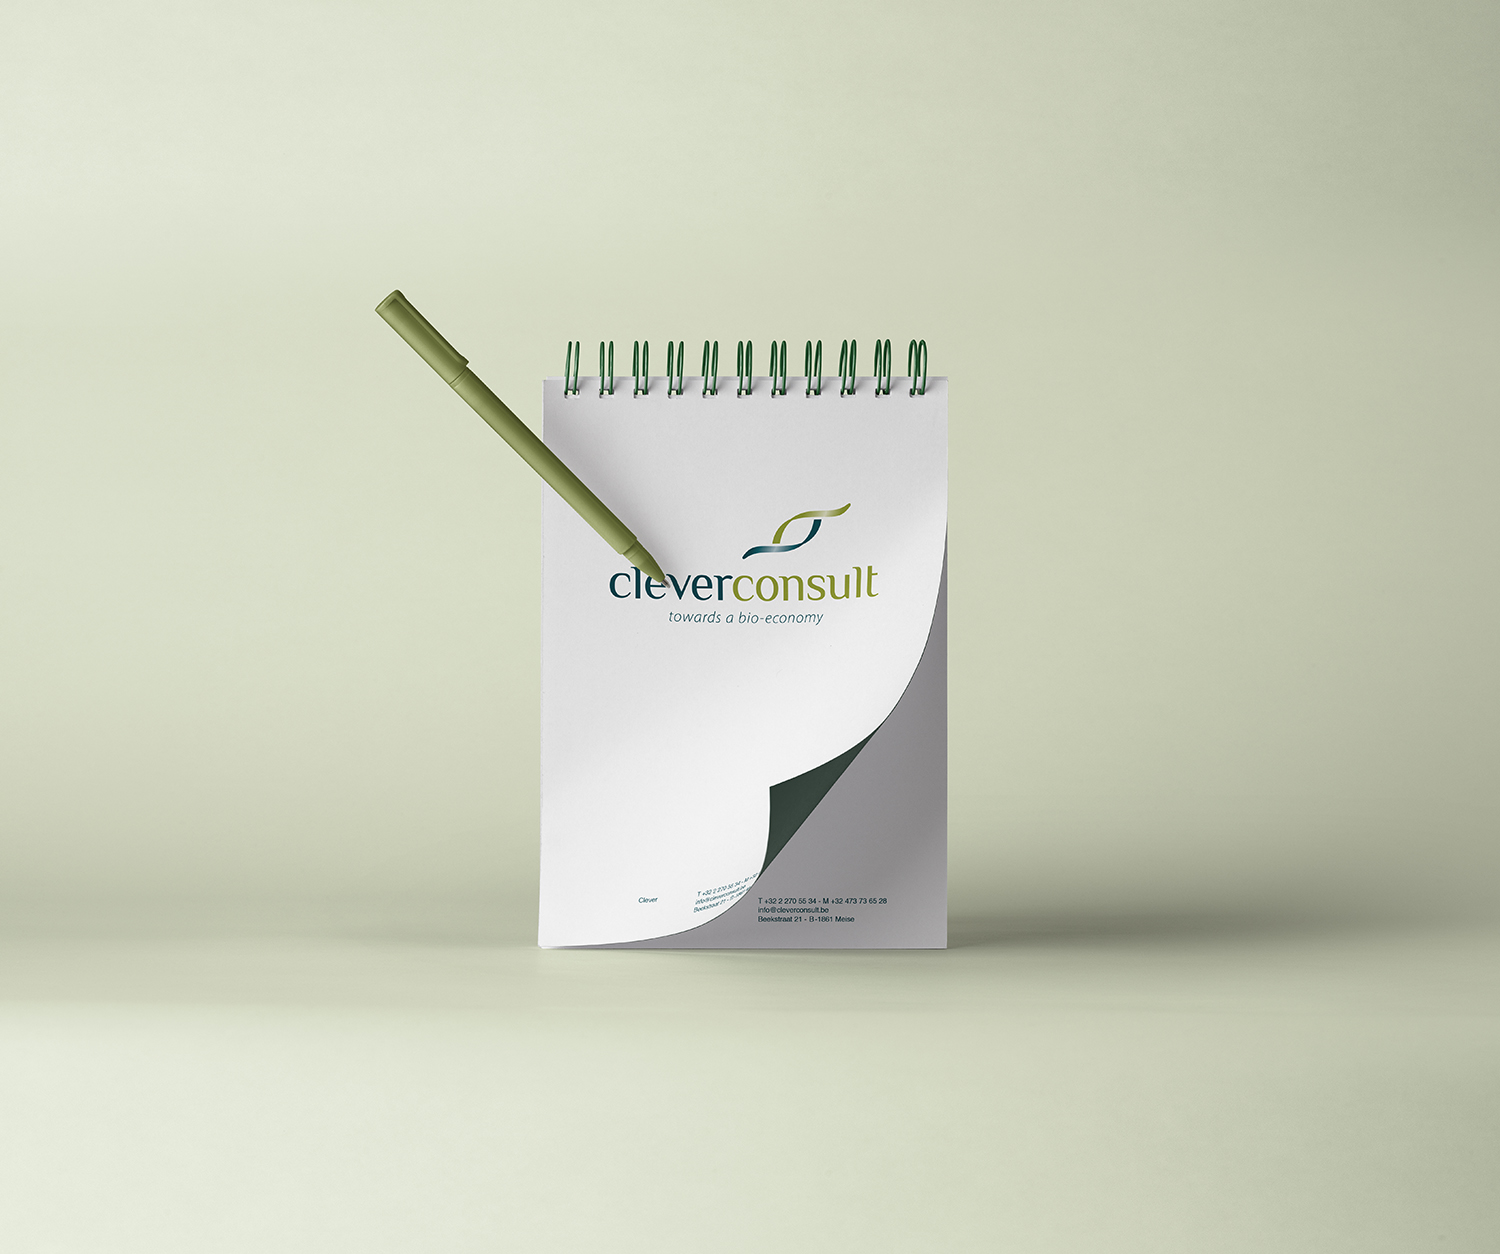 studio witvrouwen branding design graphic color visual identity data design clever consult